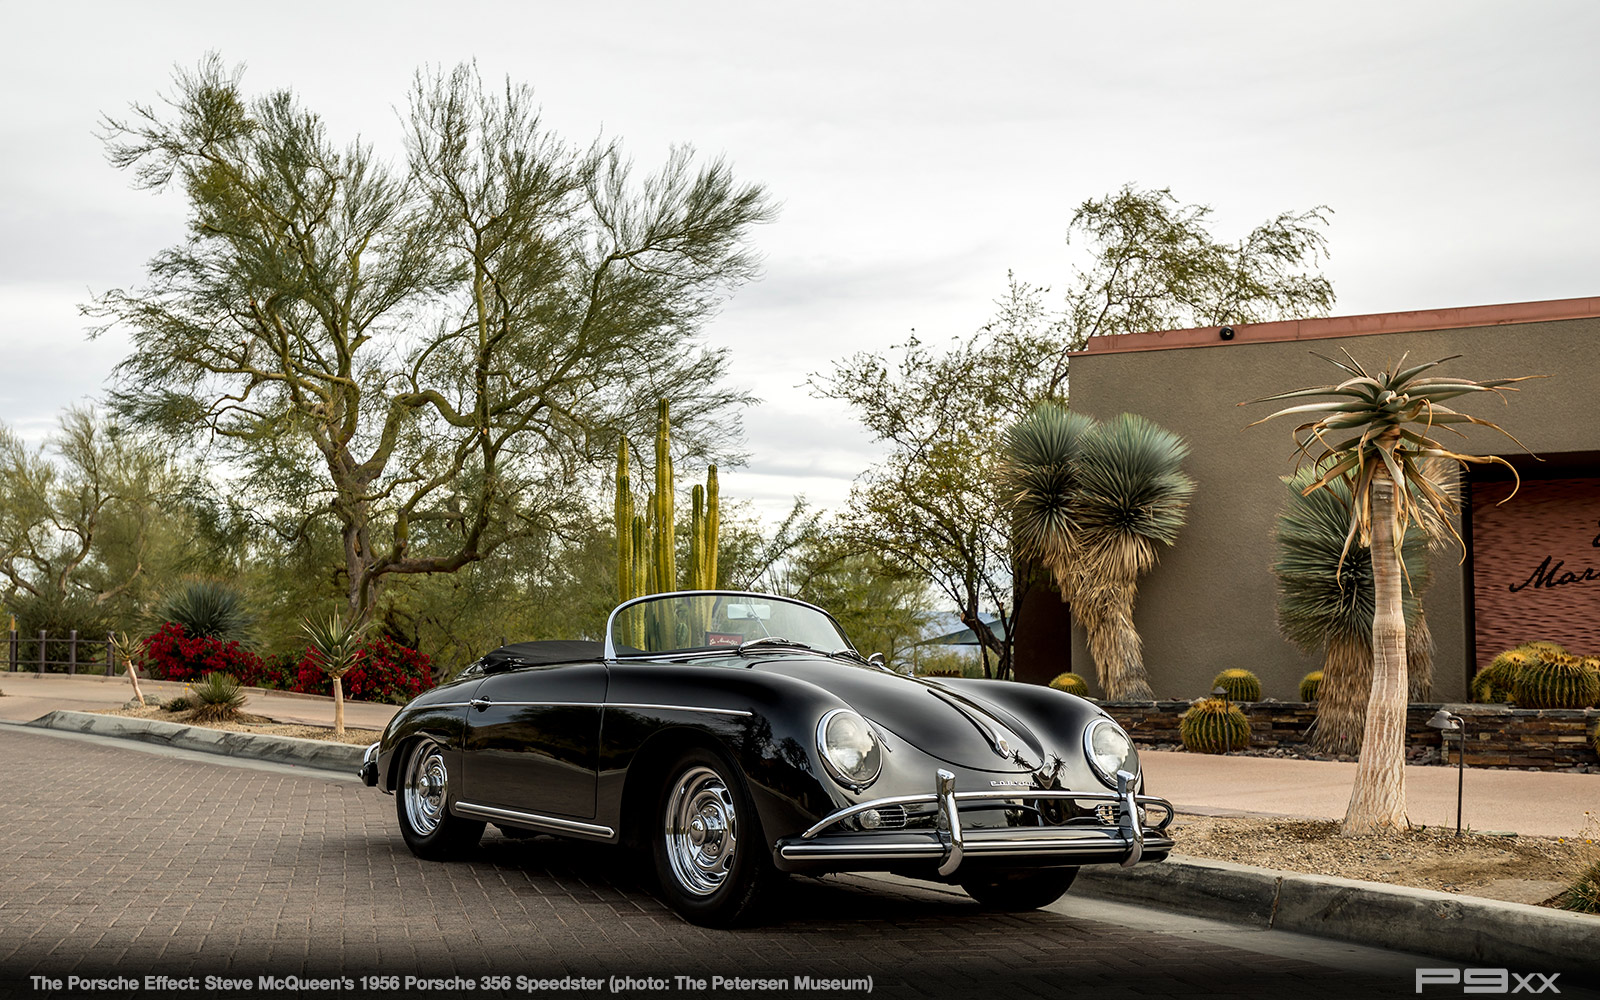 1956-Steve-McQueen-Chad-356-Speedster-Petersen-Automotive-Museum-The-Porsche-Effect-339